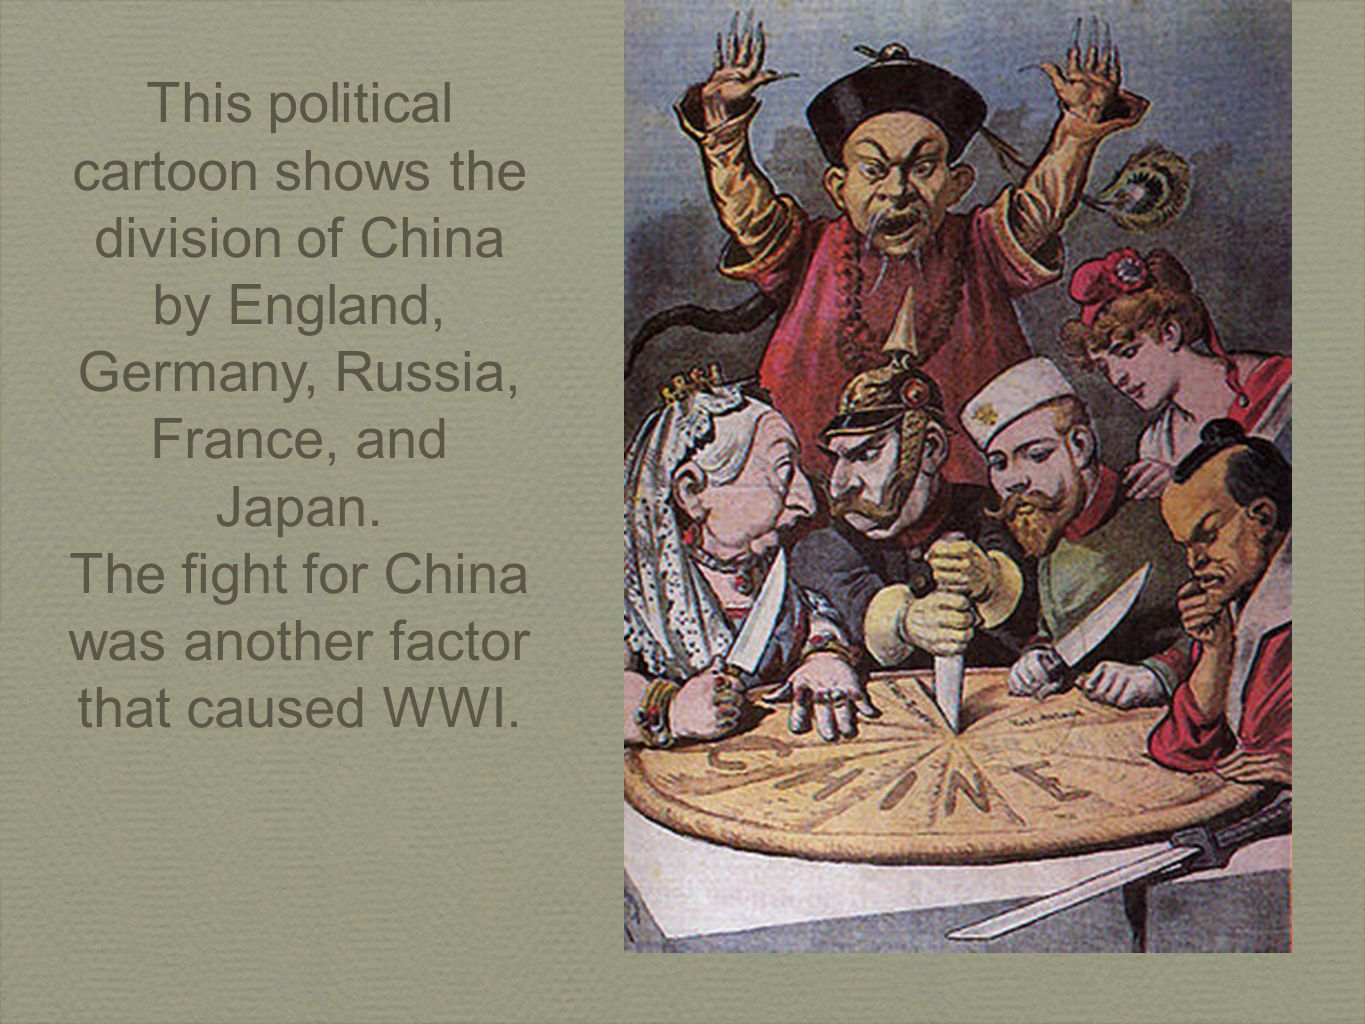 This political cartoon shows the division of China by England, Germany, Russia, France, and Japan.